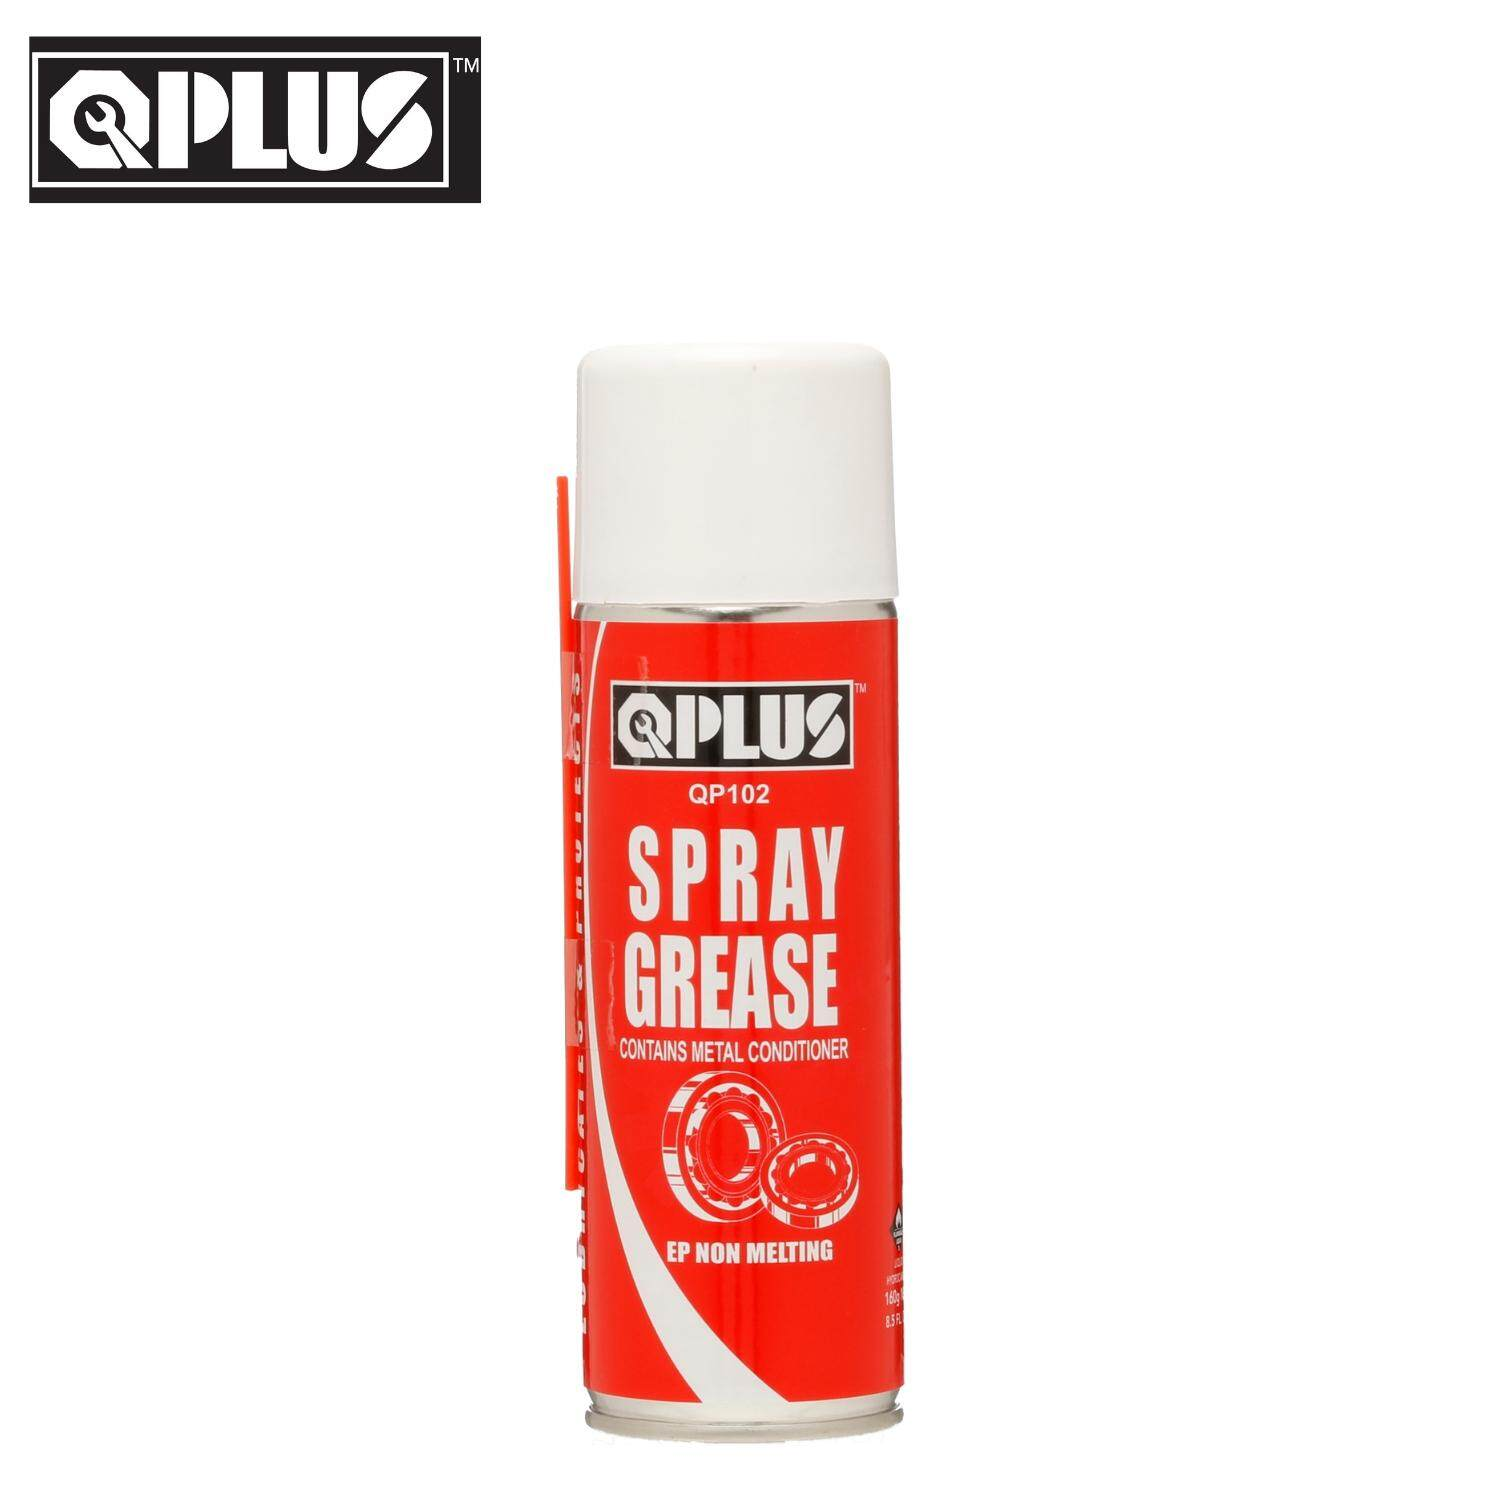 QP102 SPRAY GREASE (160GM) - OIL & LUBRICANT